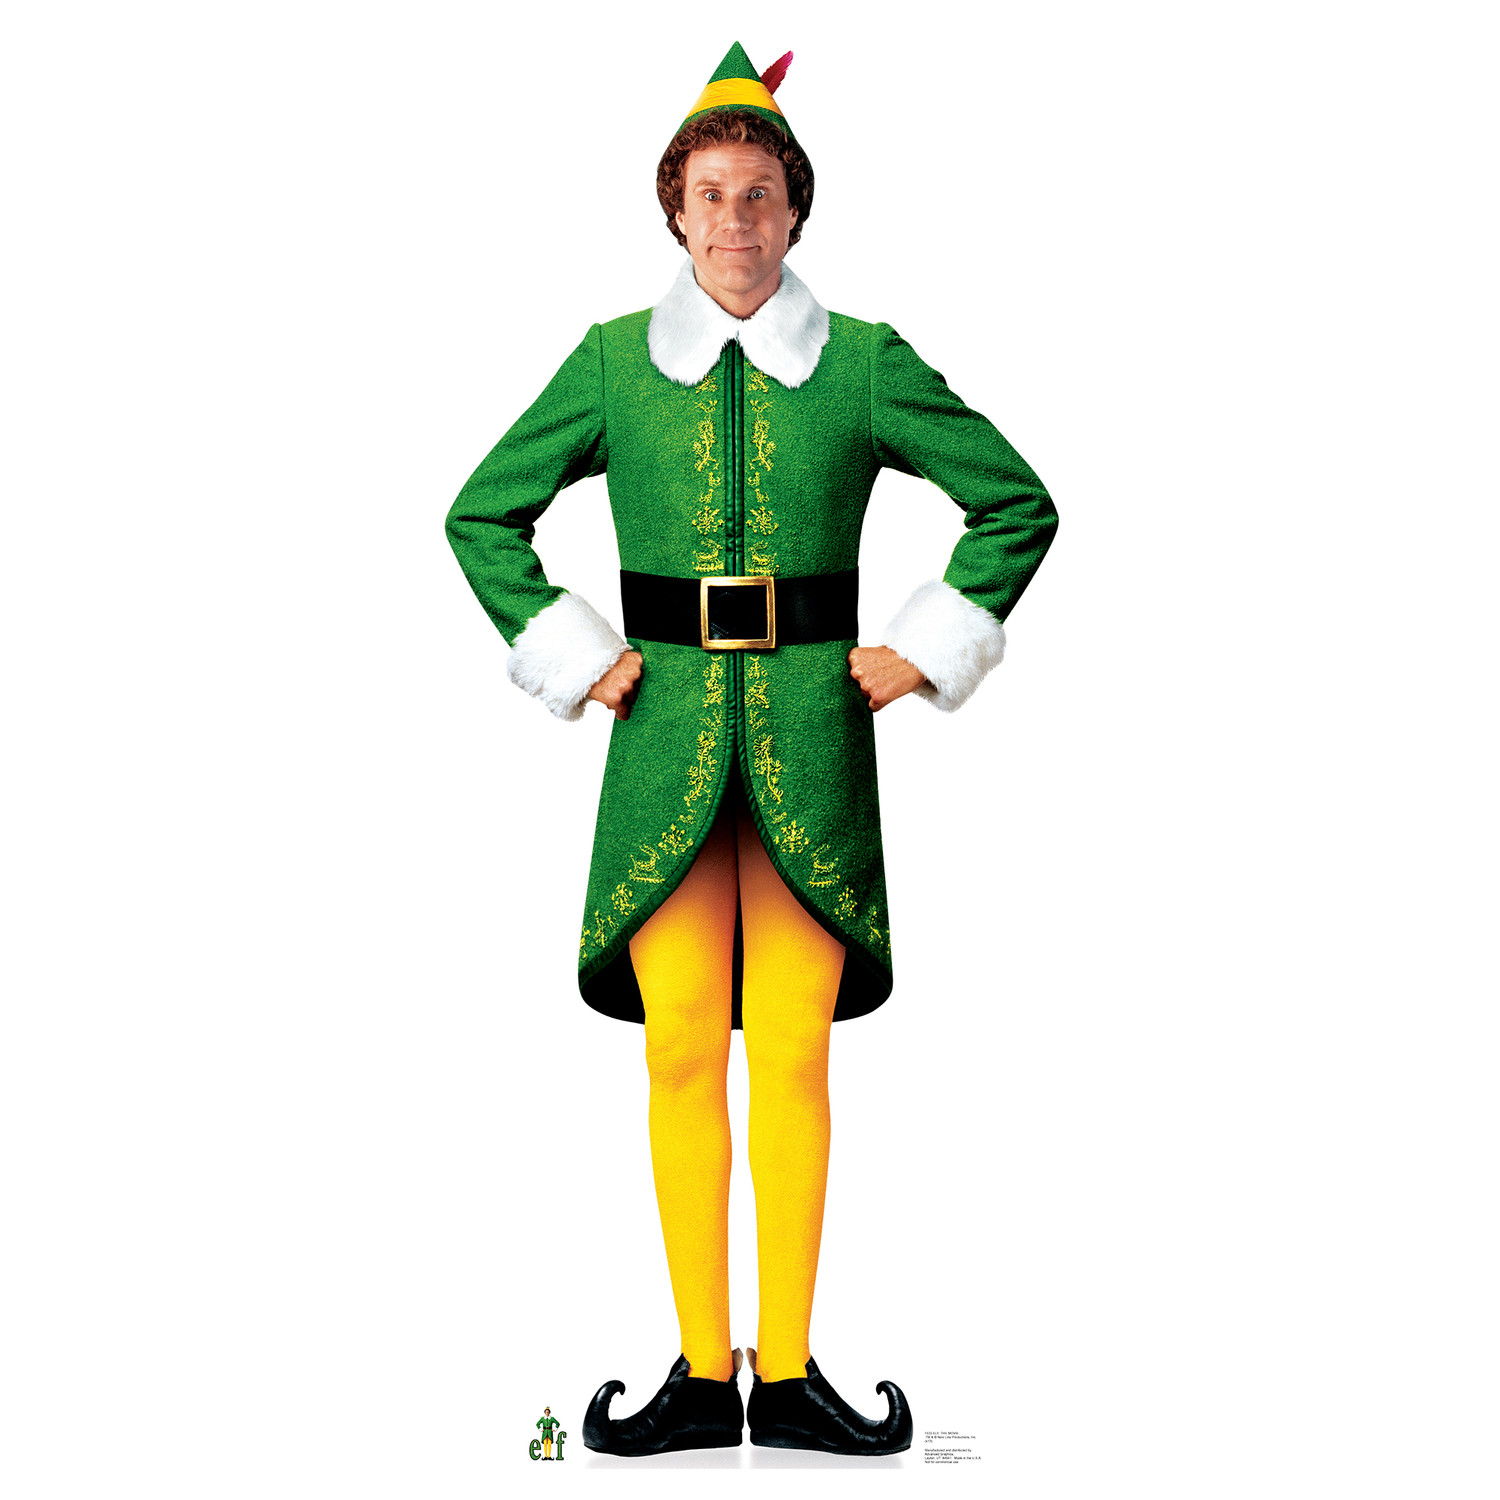 Buddy | Elf Wiki | FANDOM powered by Wikia